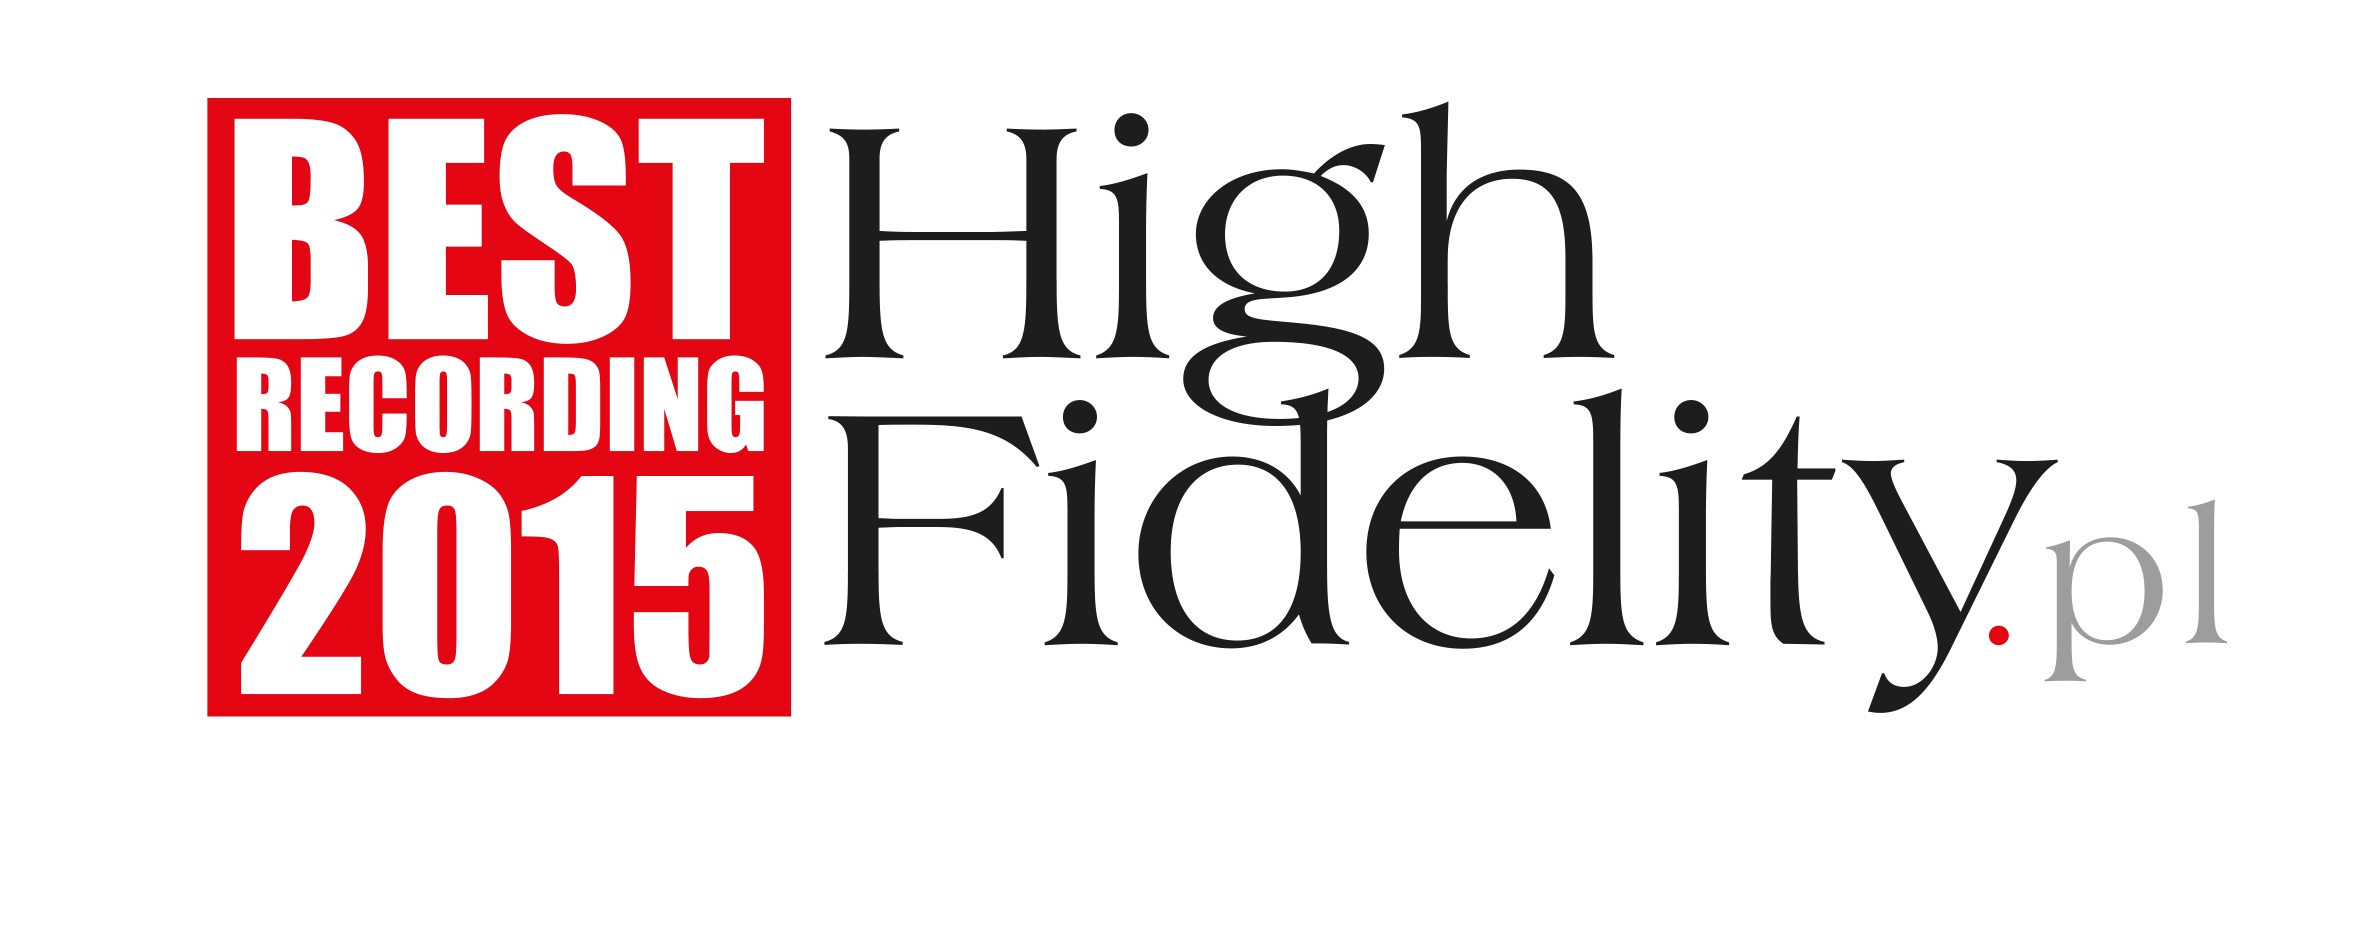 High Fidelity Best Recording 2015